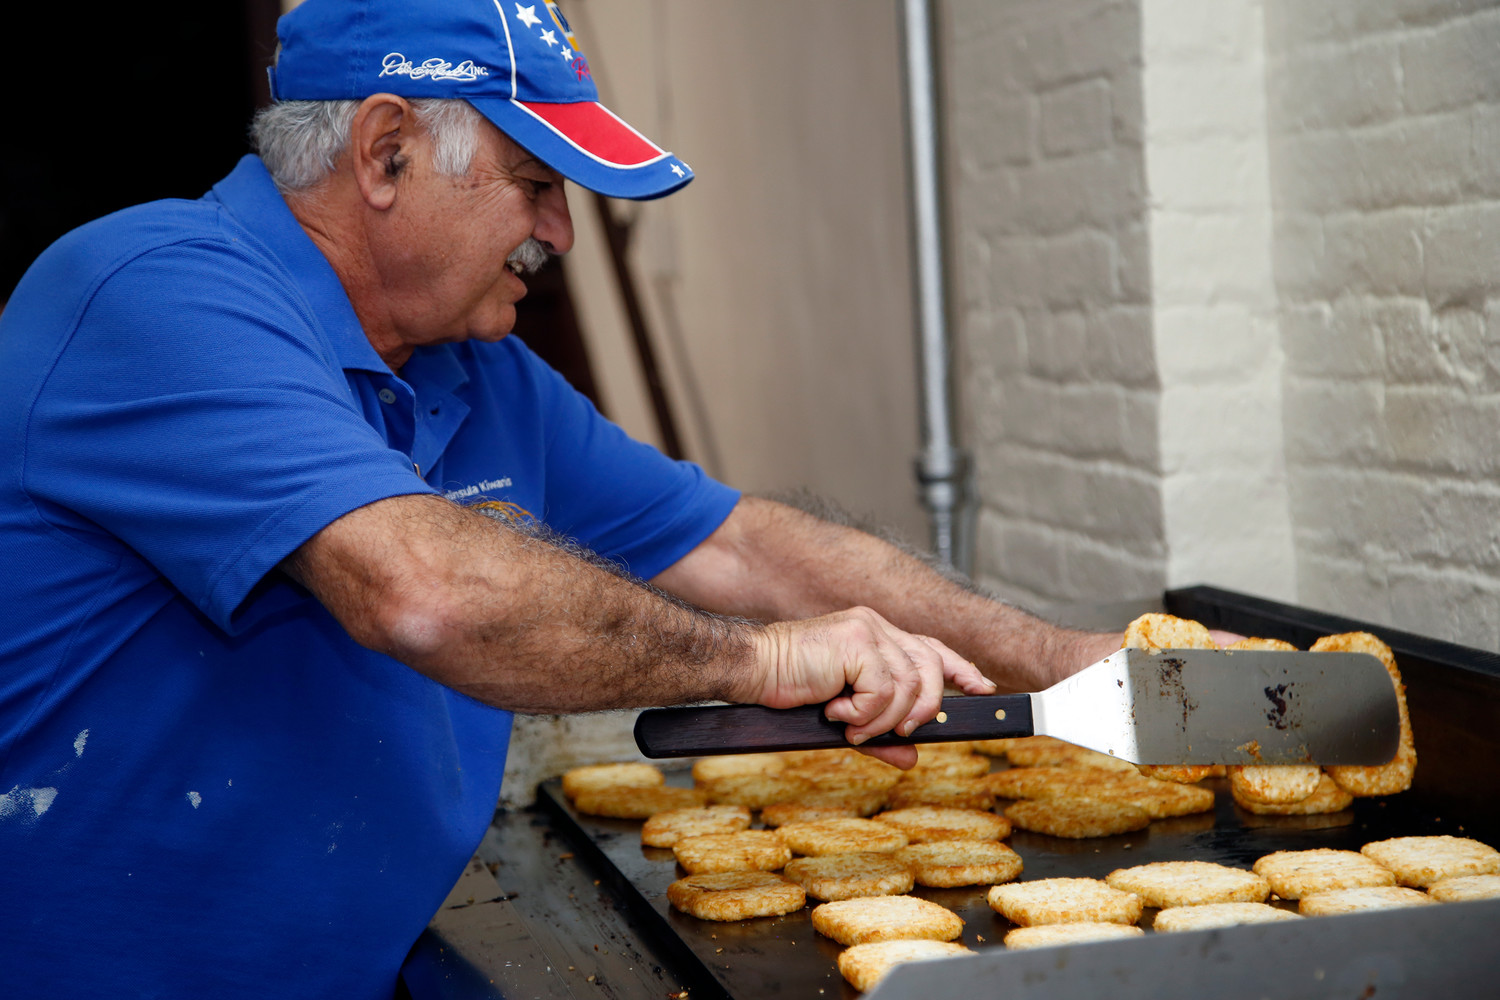 Peninsula Kiwanis member Frank Trabella helped to ensure that the hash browns were evenly browned at the club's annual Christmas Dream Pancake Breakfast on Oct. 1.